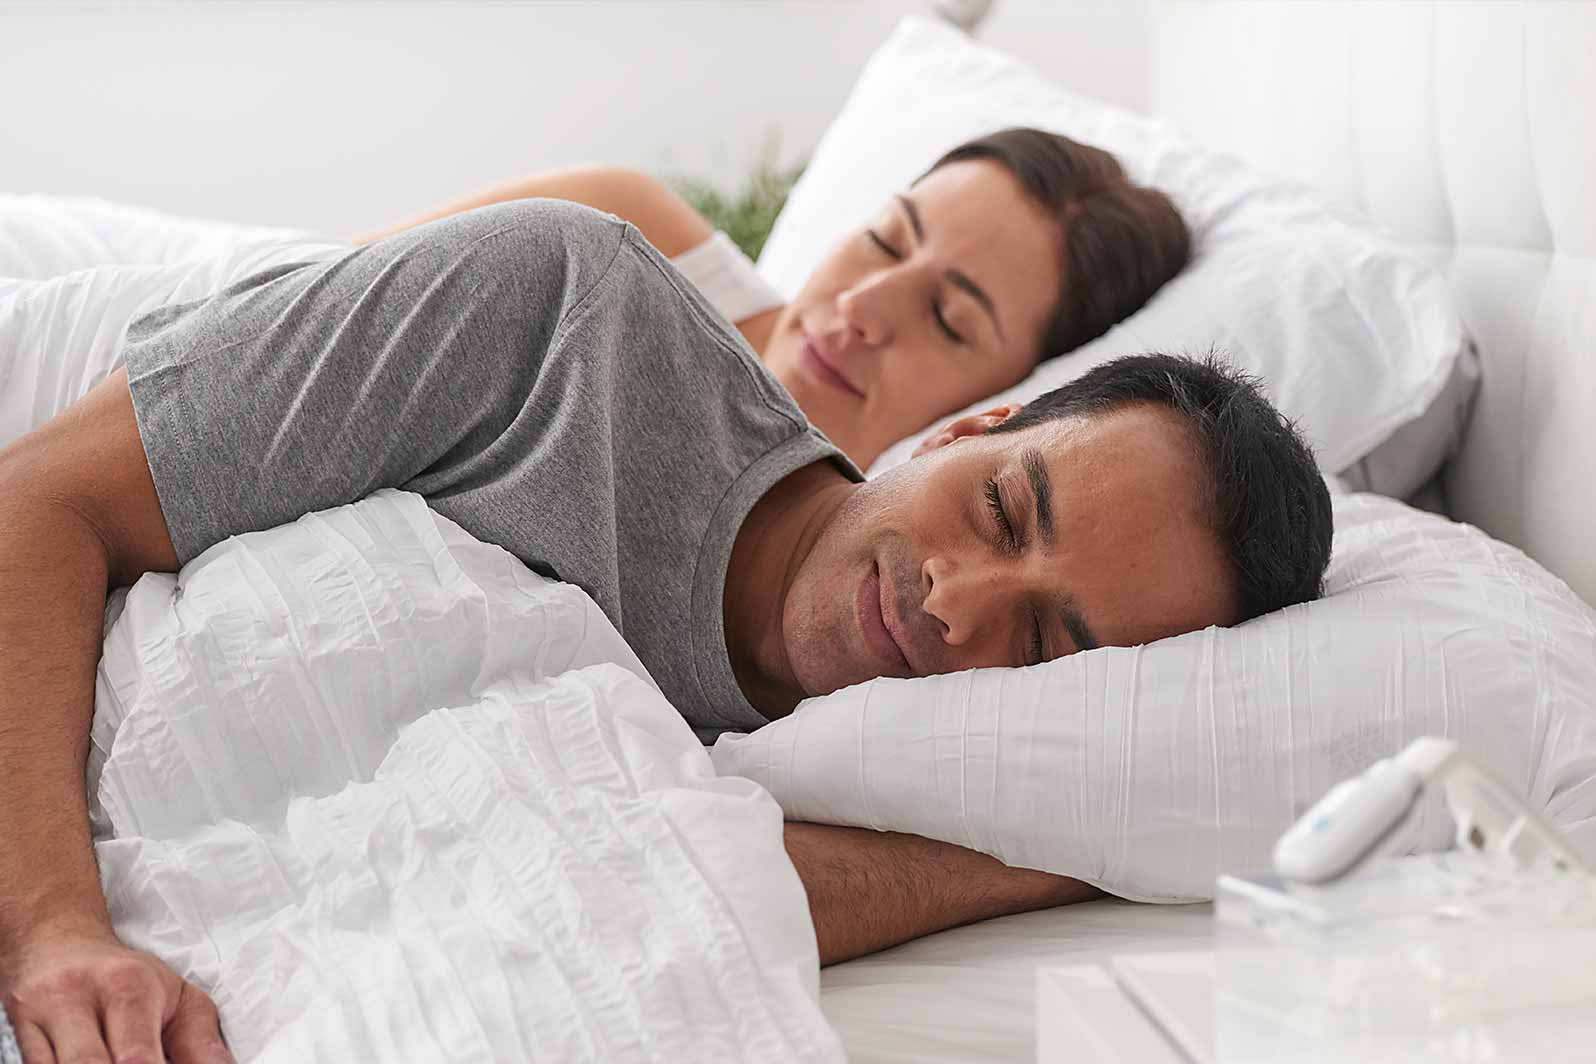 eXciteOSA for Sleep apnoea allows you to sleep without wearing a mask or MAD